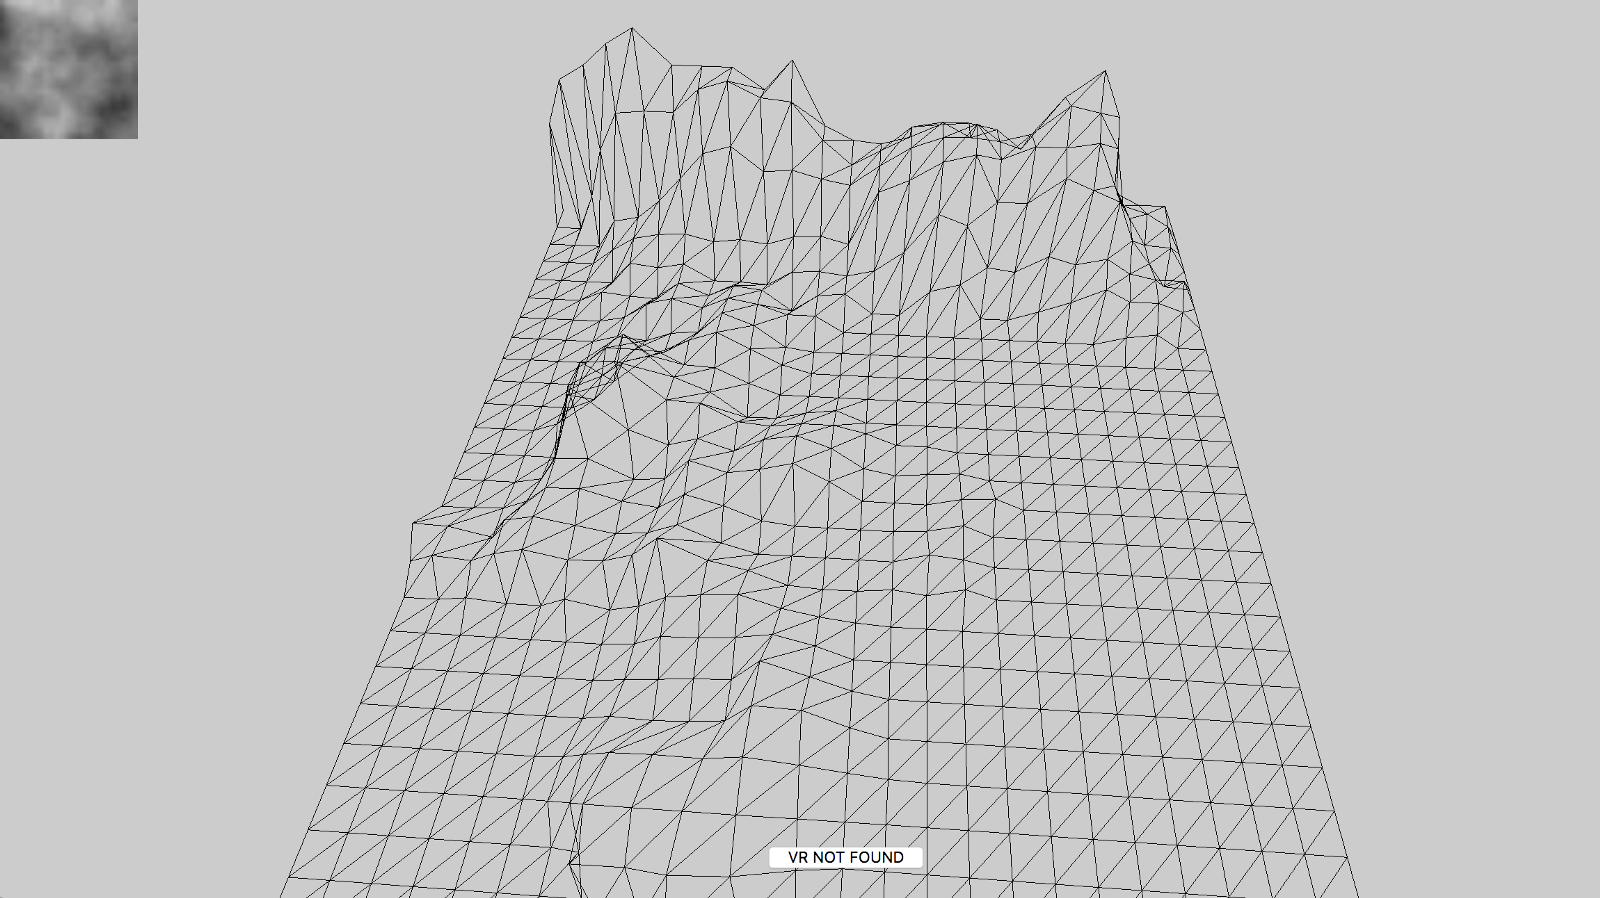 low poly style terrain generation